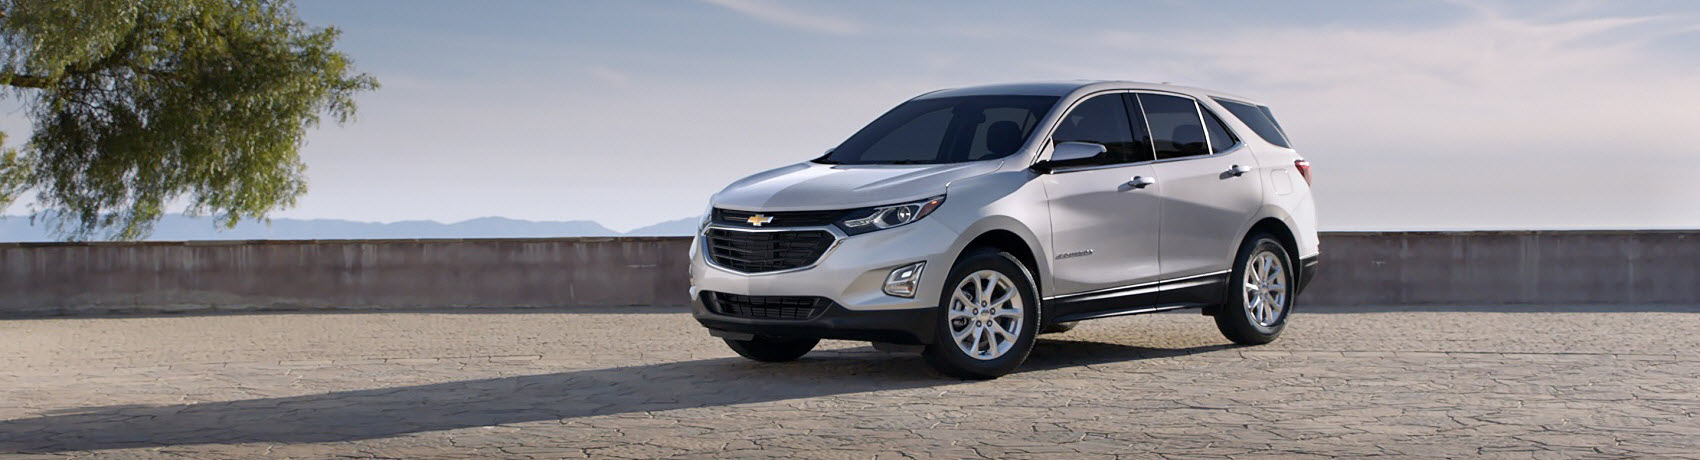 Chevy Equinox Safety Capabilities